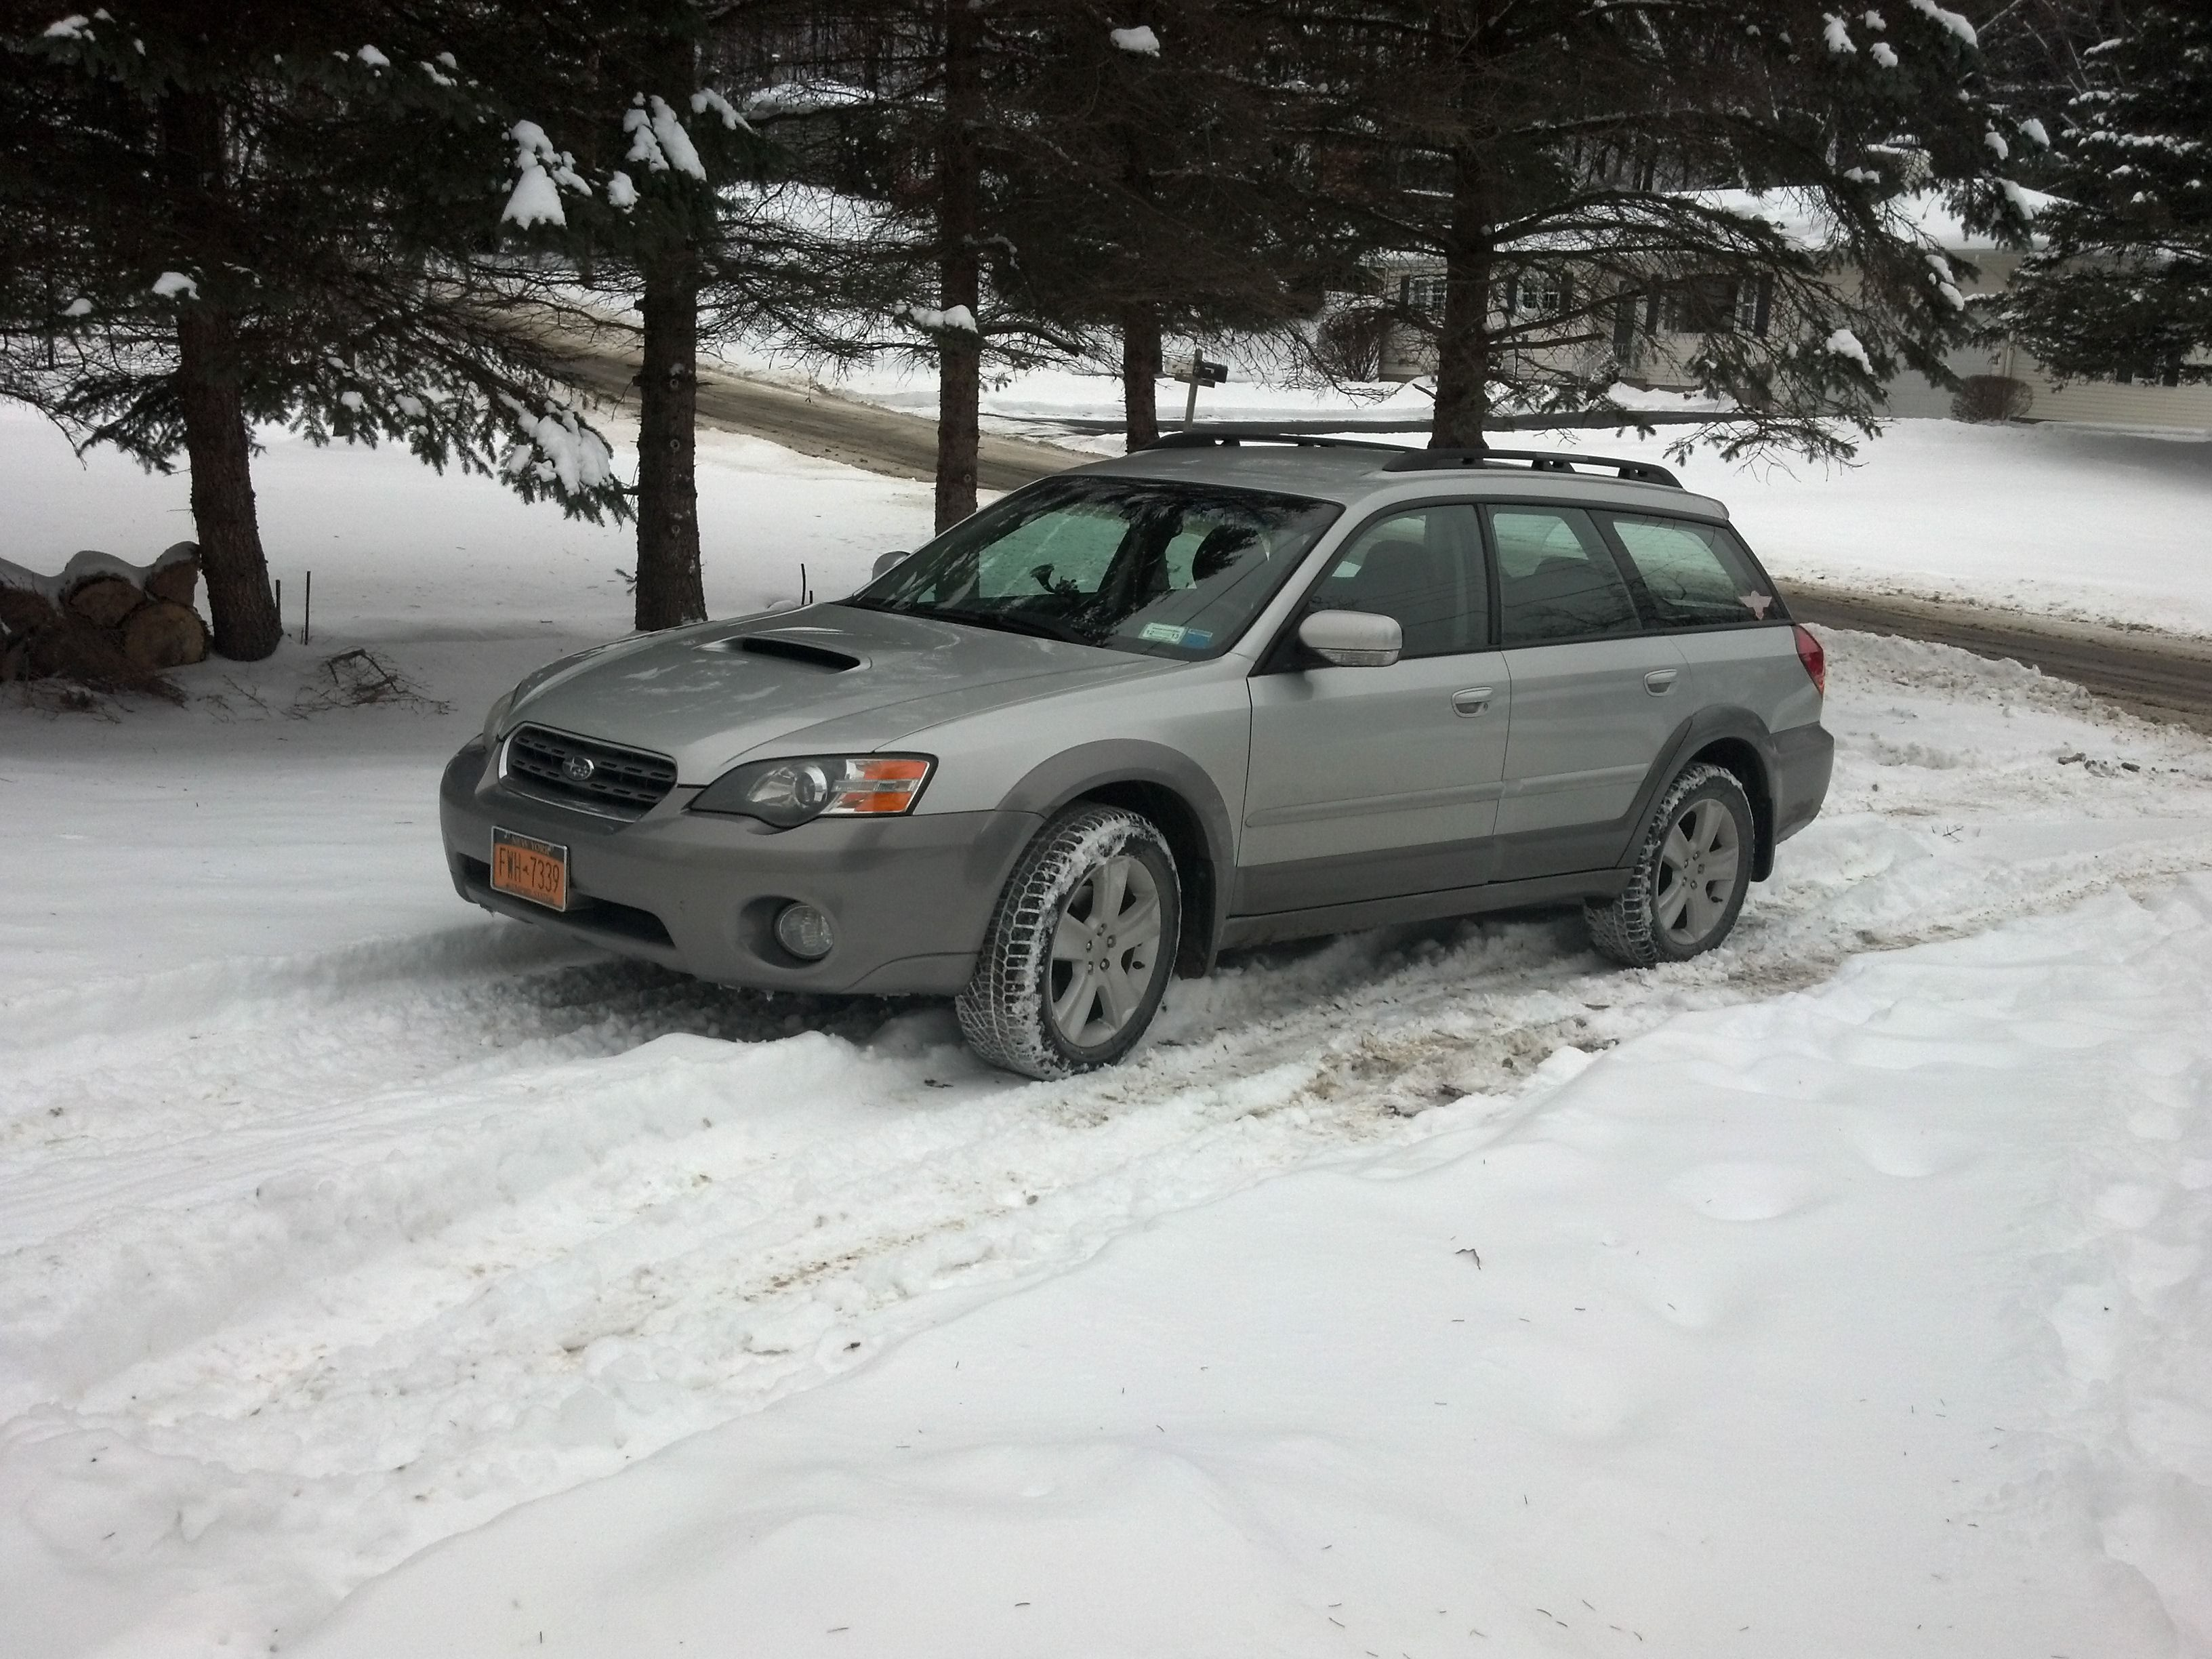 05xt summer tire size question subaru outback subaru outback report this image vanachro Gallery